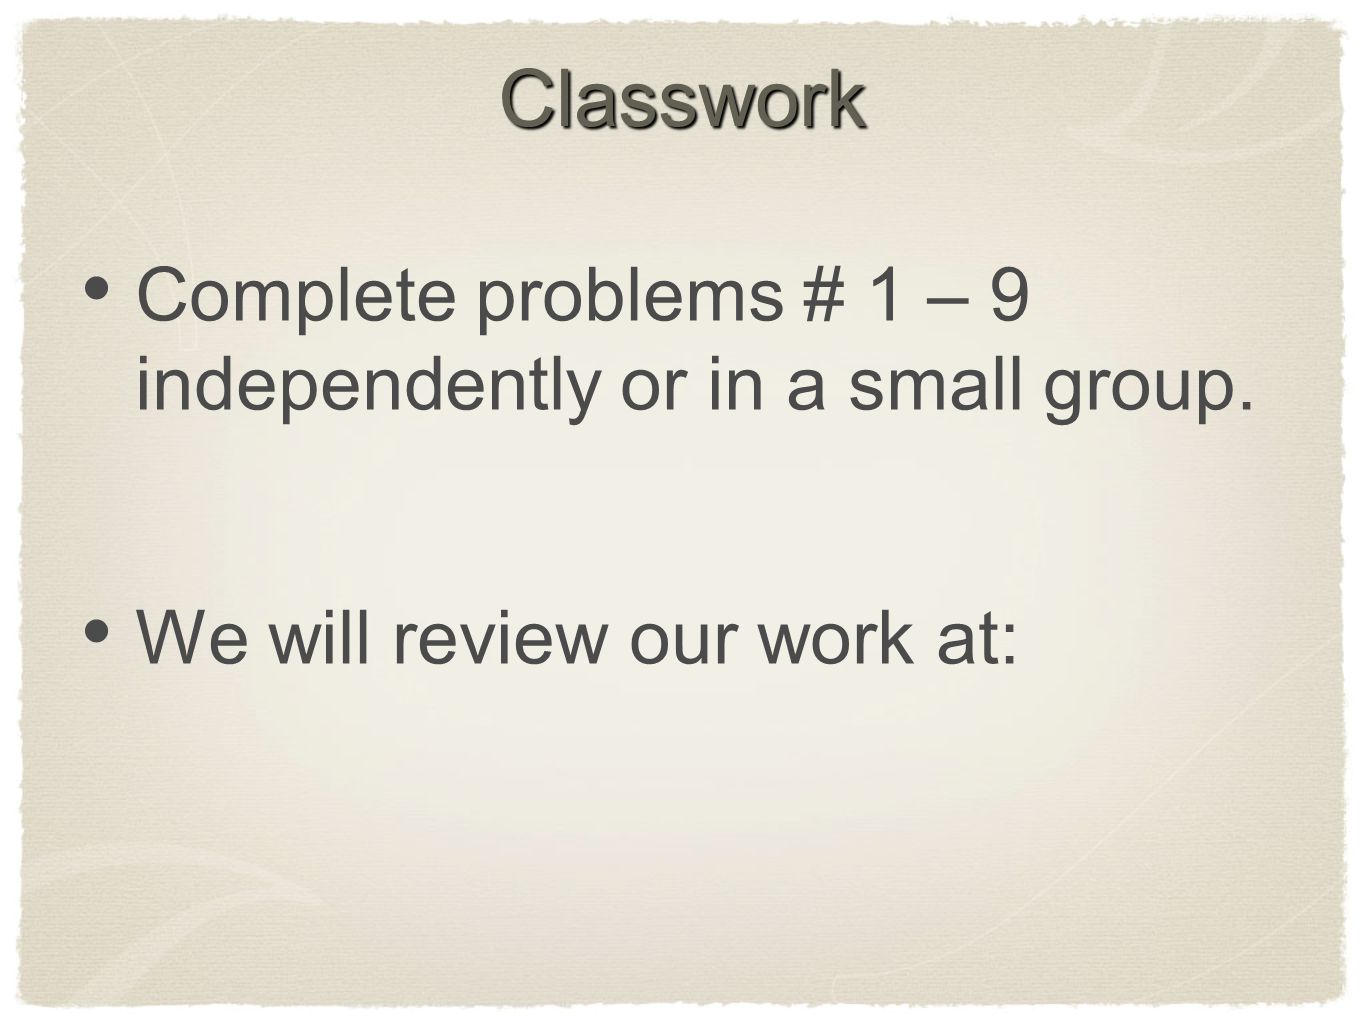 Classwork Complete problems # 1 – 9 independently or in a small group.